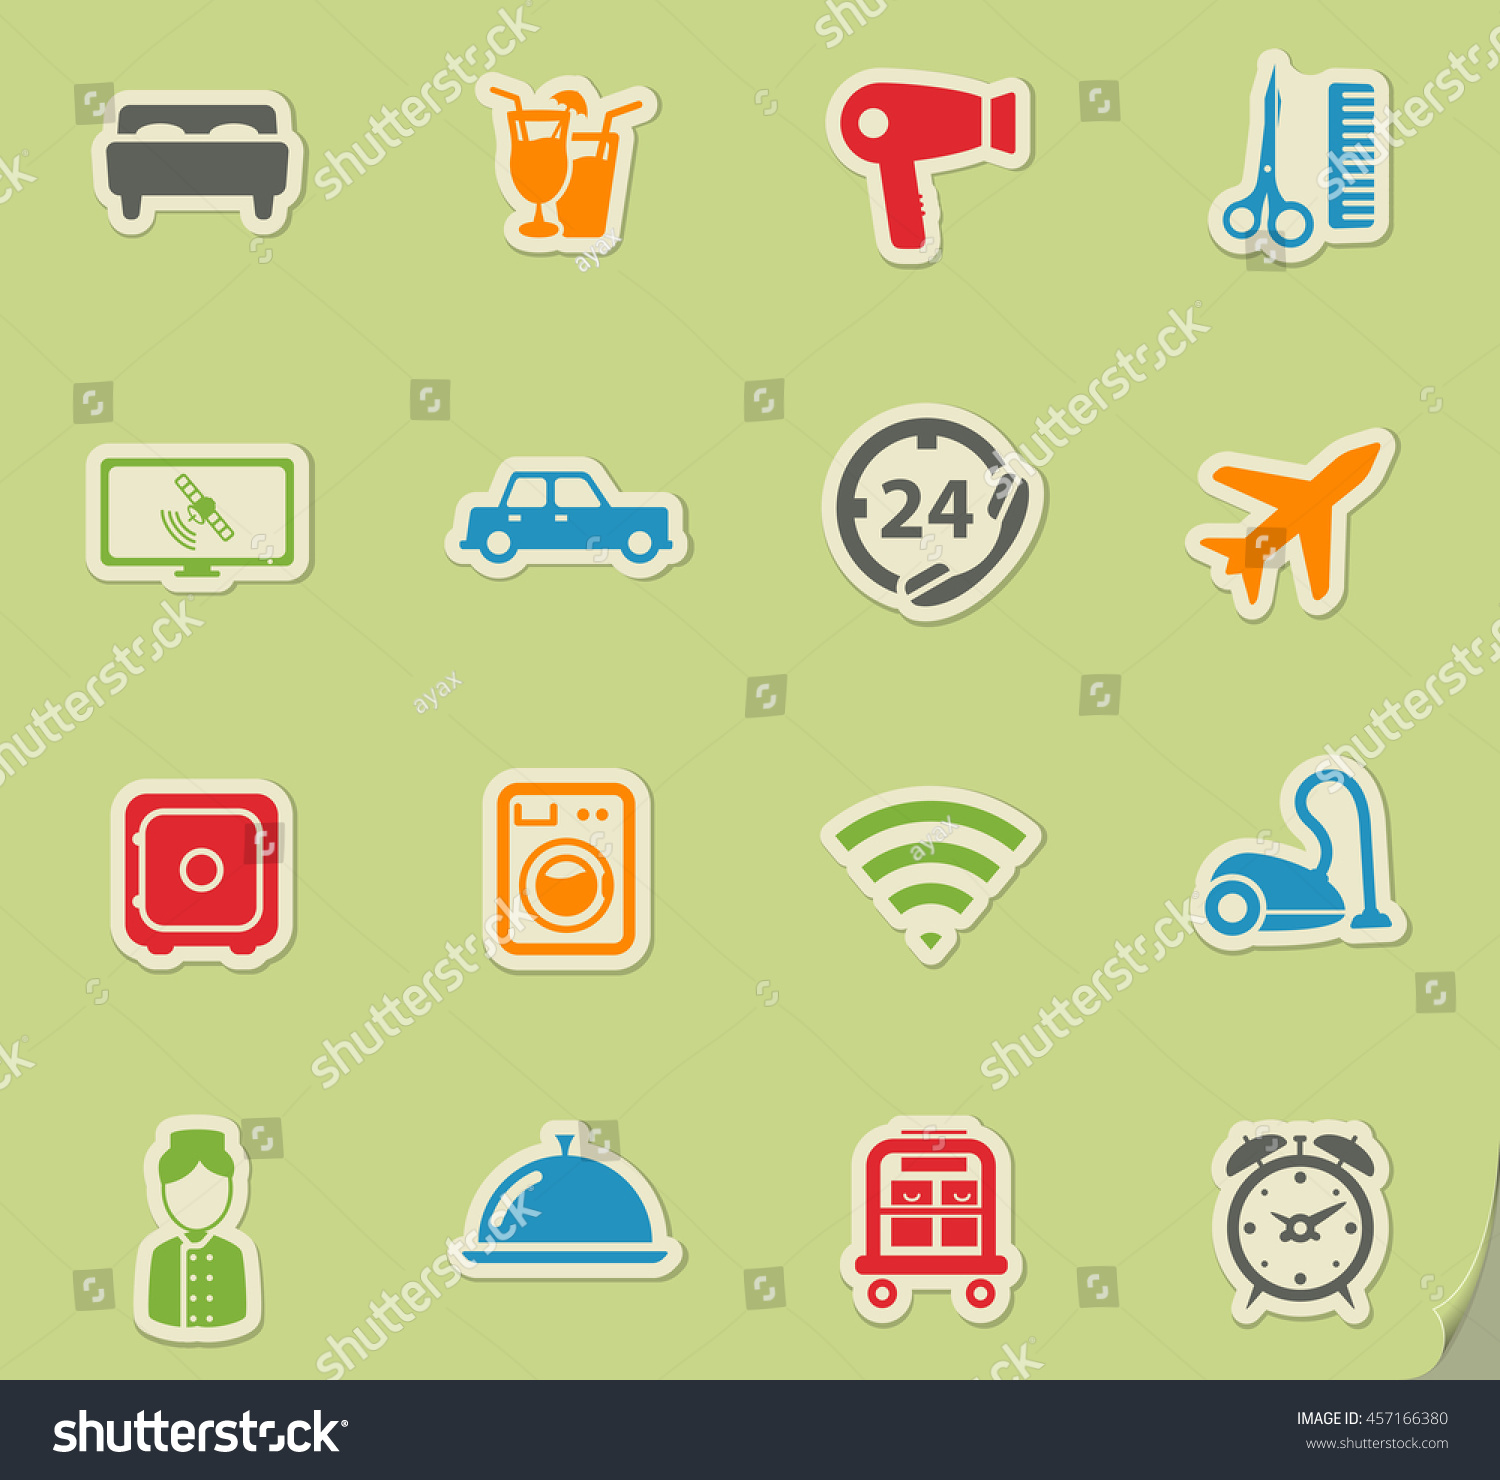 A Hotel Simply Hotel Simply Symbol Web Icons User Stock Vector 457166380